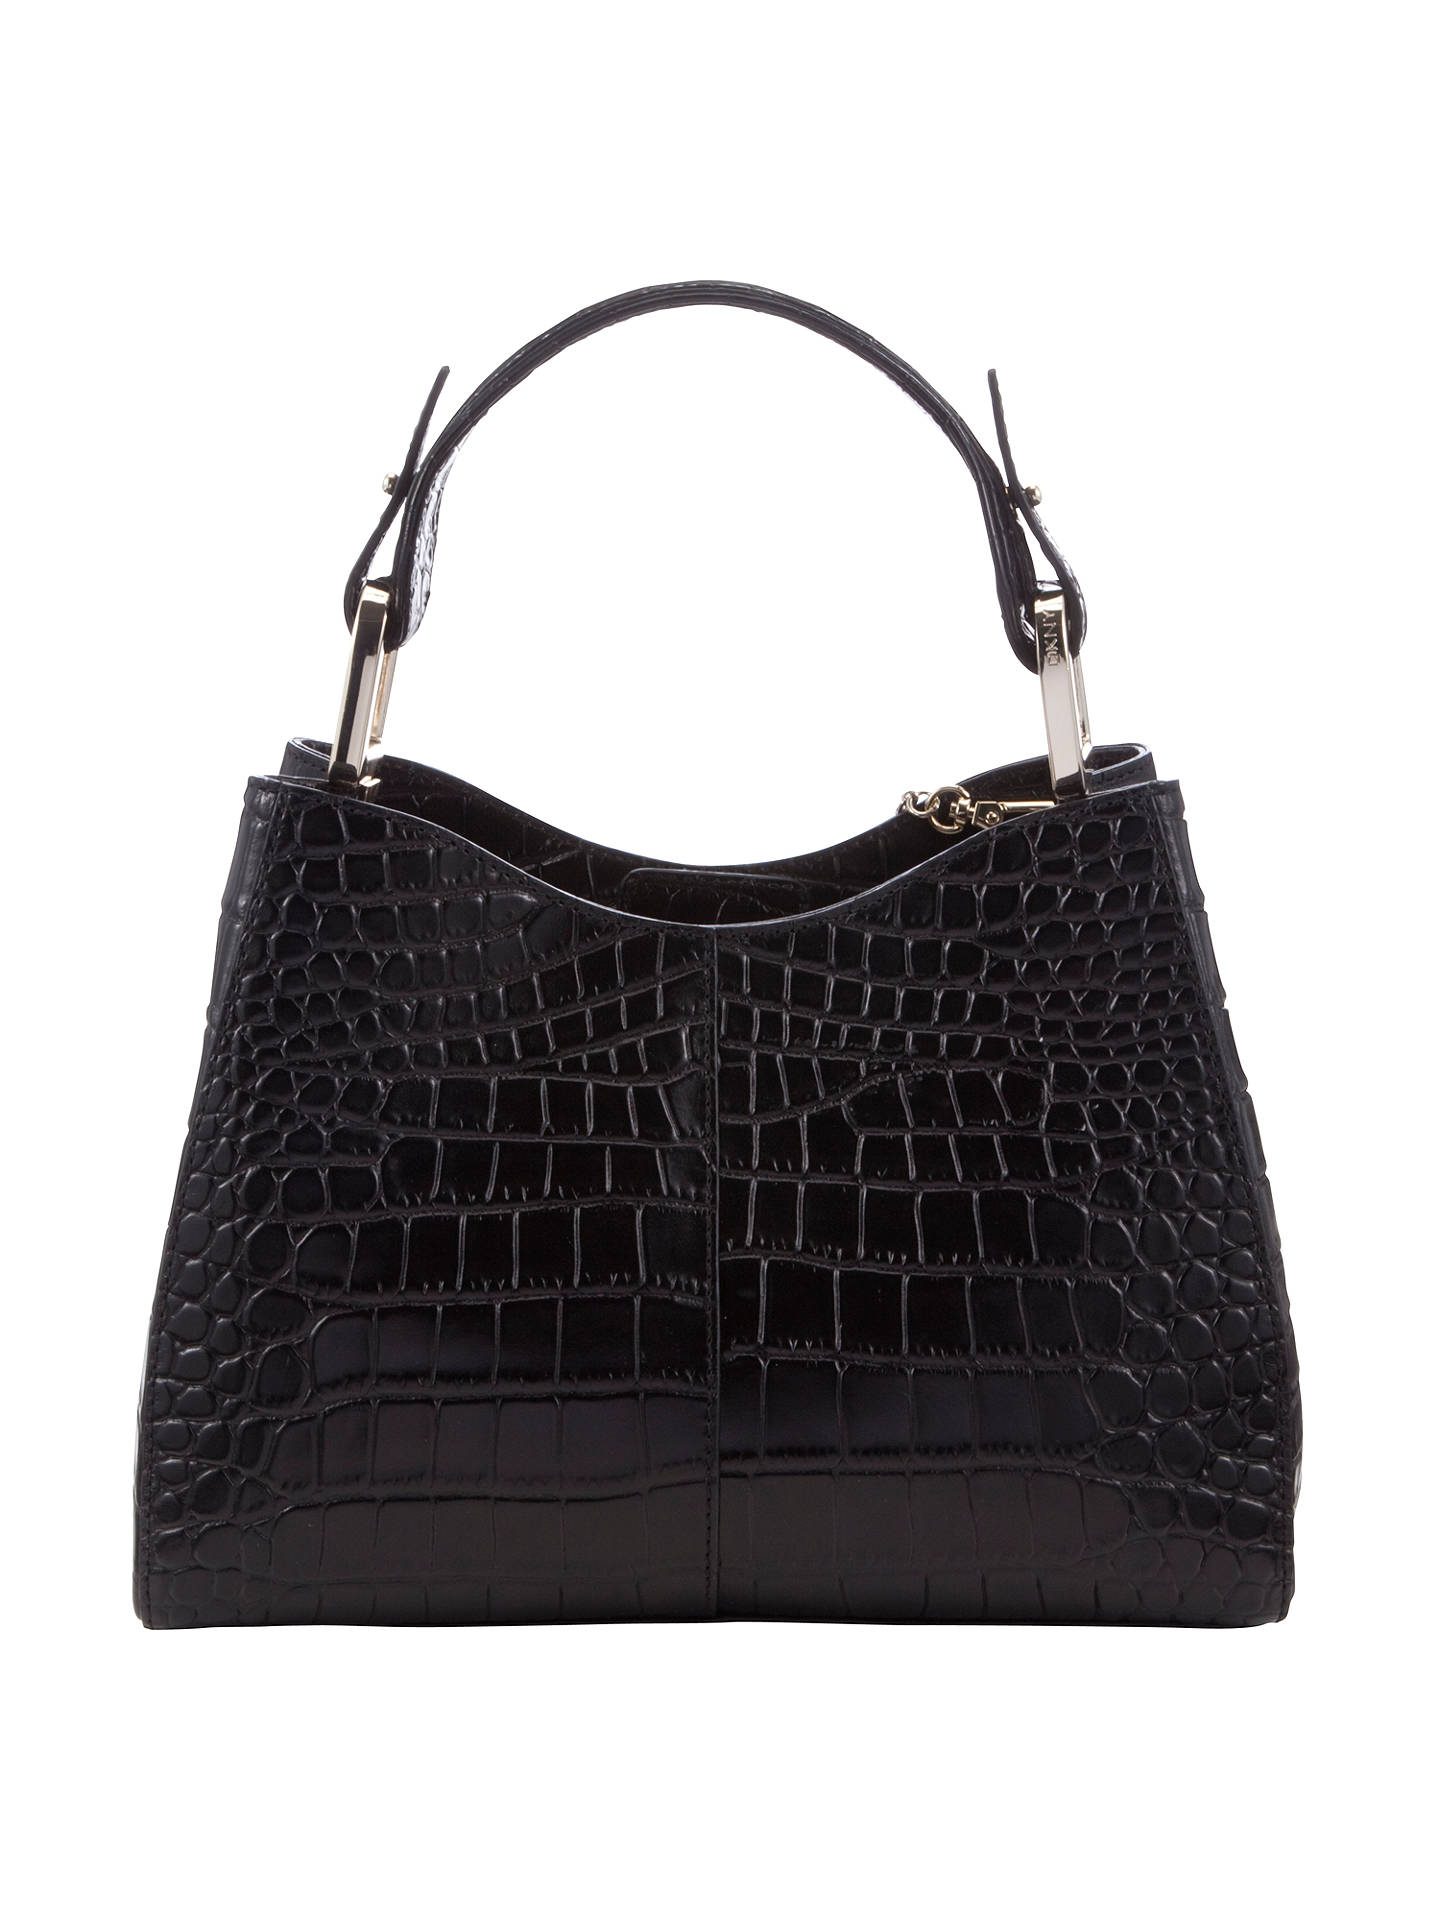 Buy DKNY Gramercy Crocodile Top Handle Grab Bag Online at johnlewis.com